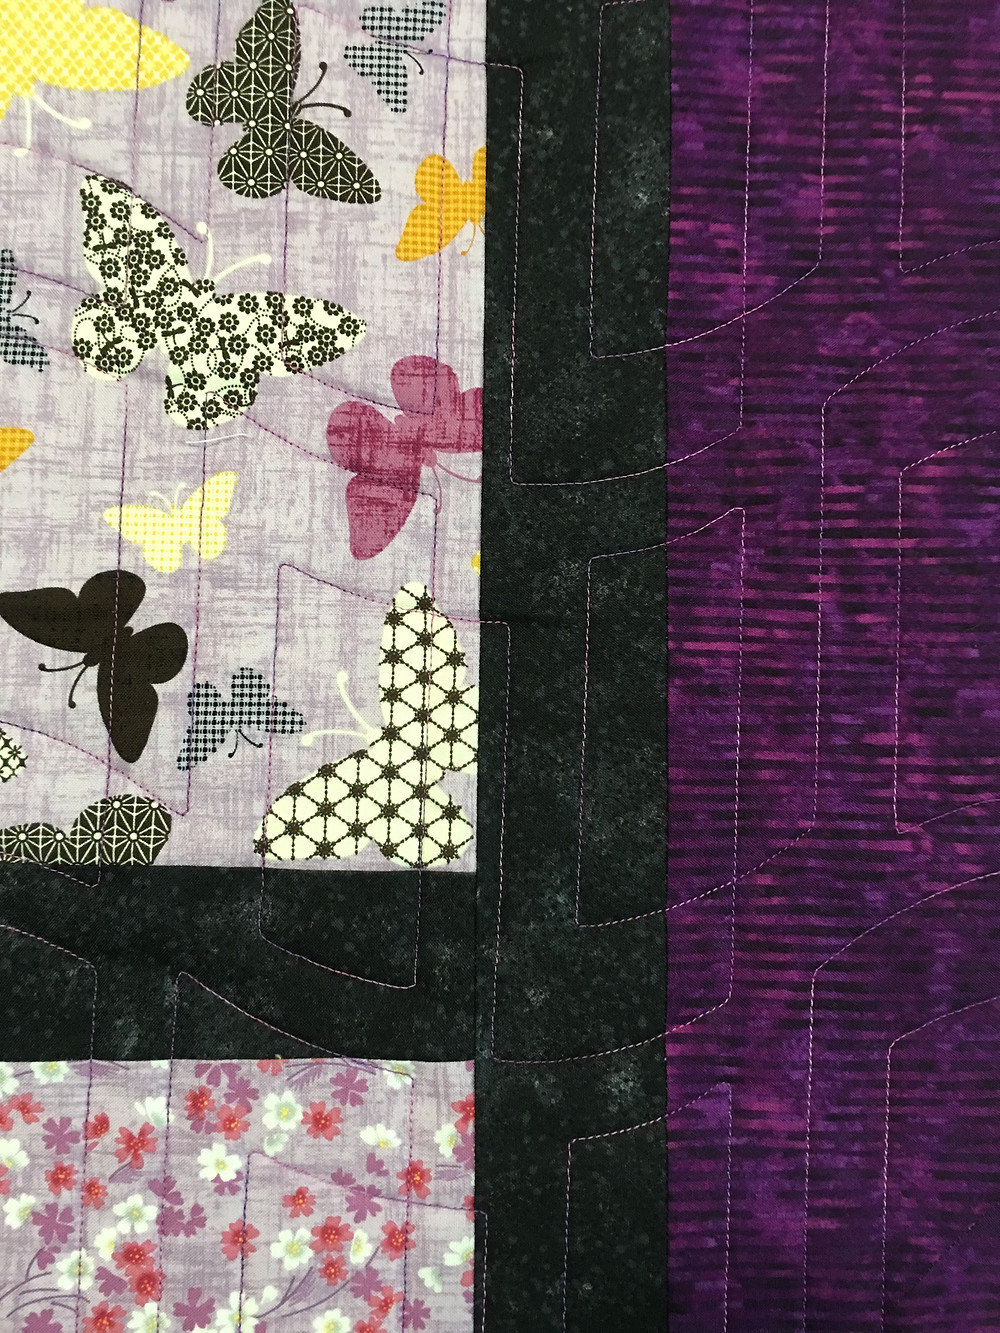 Another close up of quilting pattern in purple thread